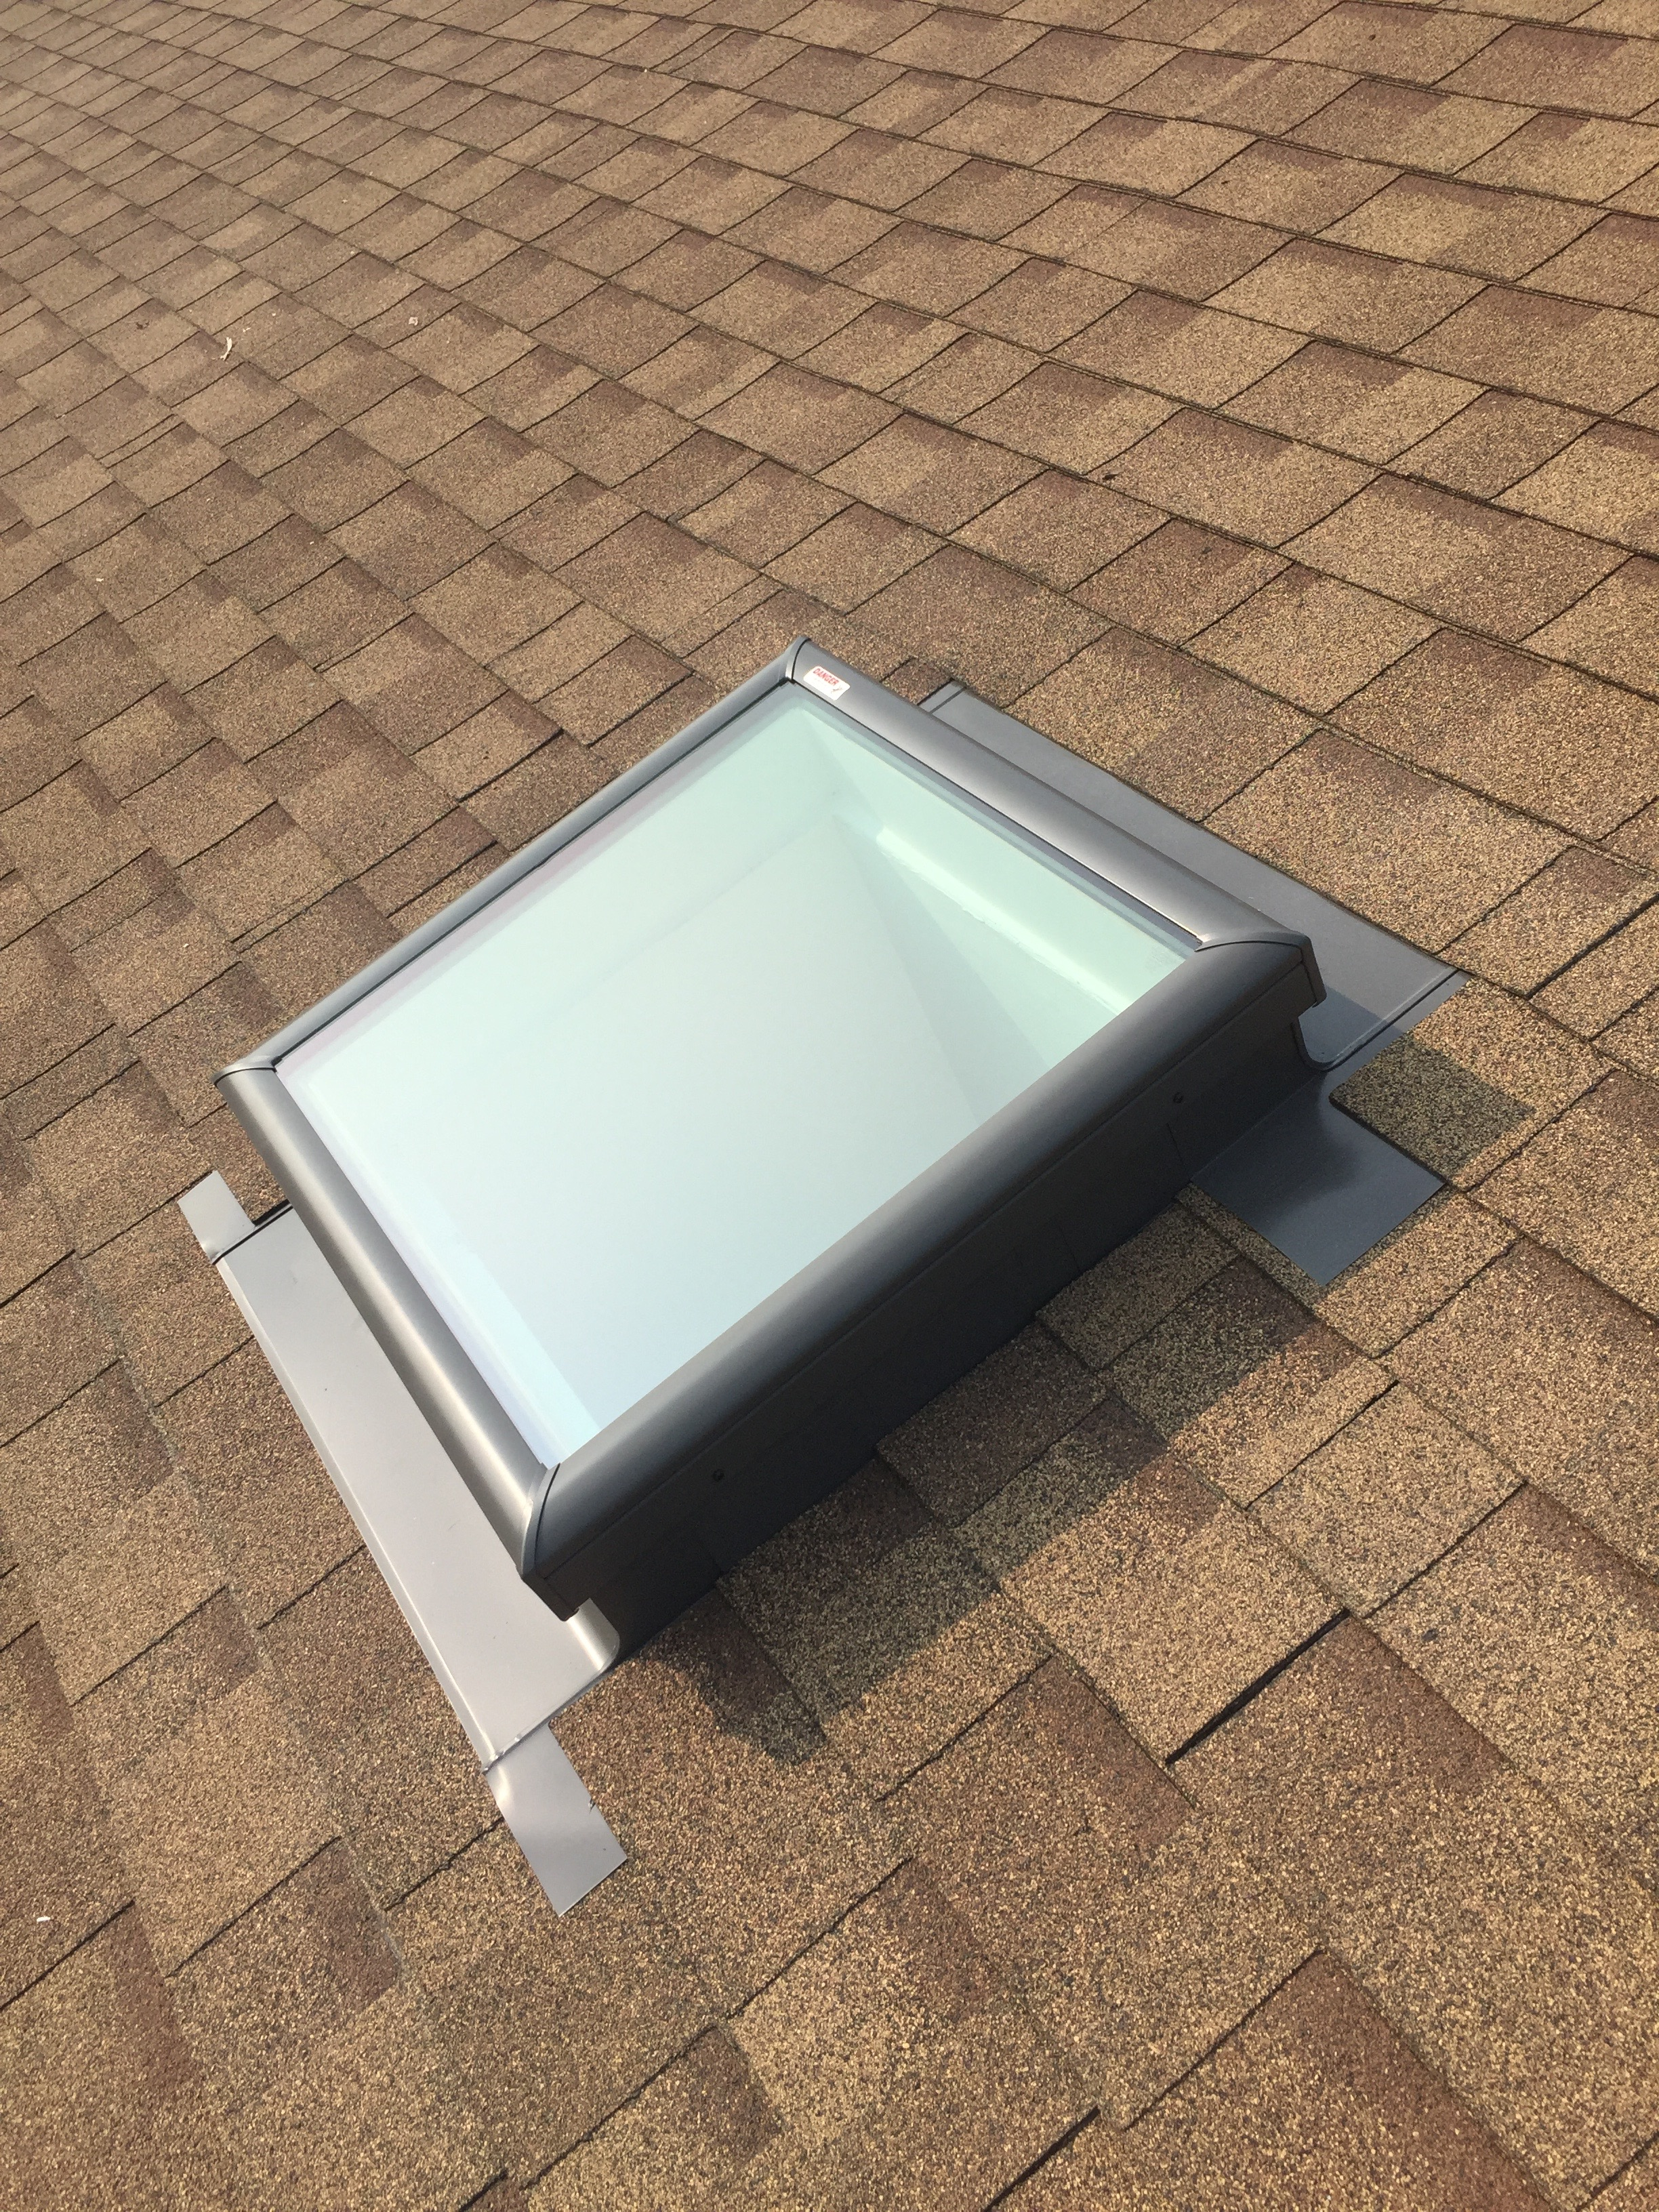 Skylight Replacement Oshawa